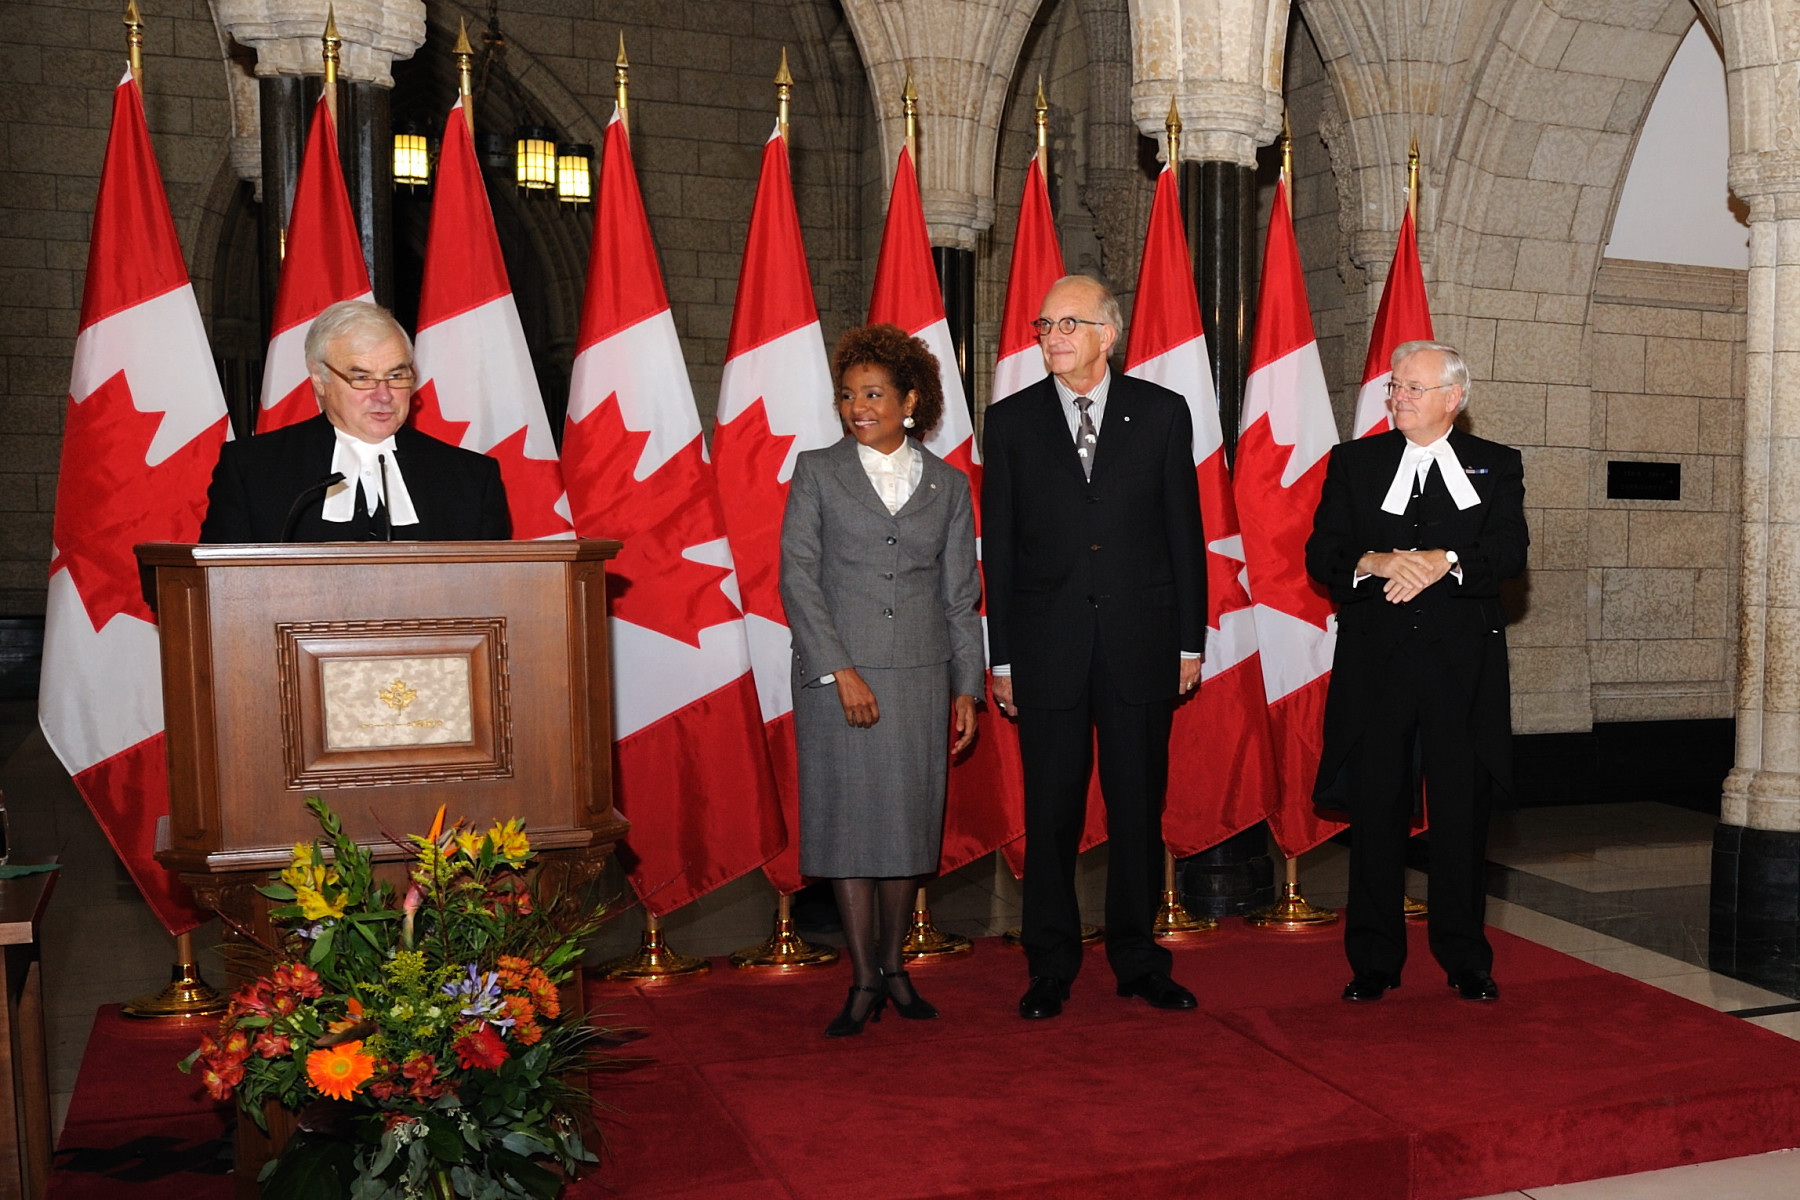 Their Excellencies were the guests of honour at a farewell reception that was held in the Hall of Honour of Centre Block, on Parliament Hill.